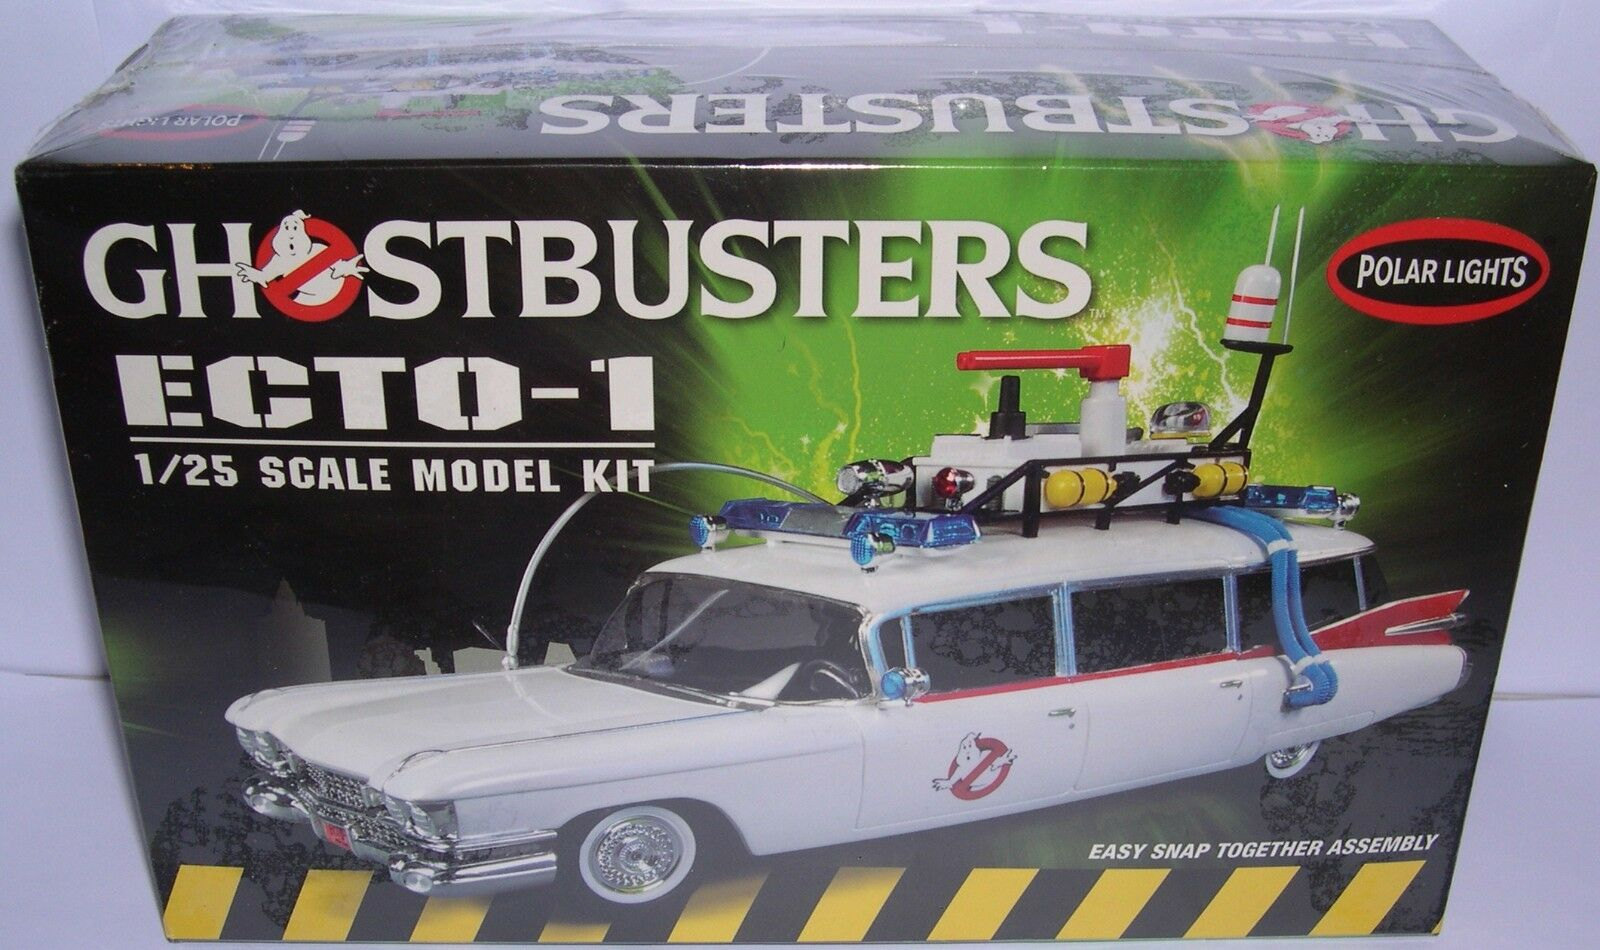 POLAR LUMIÈRES POL914 12 KIT 1 25 ILLAC CHOSBUSTERS ECTO-1 GHOSTBUSTERS